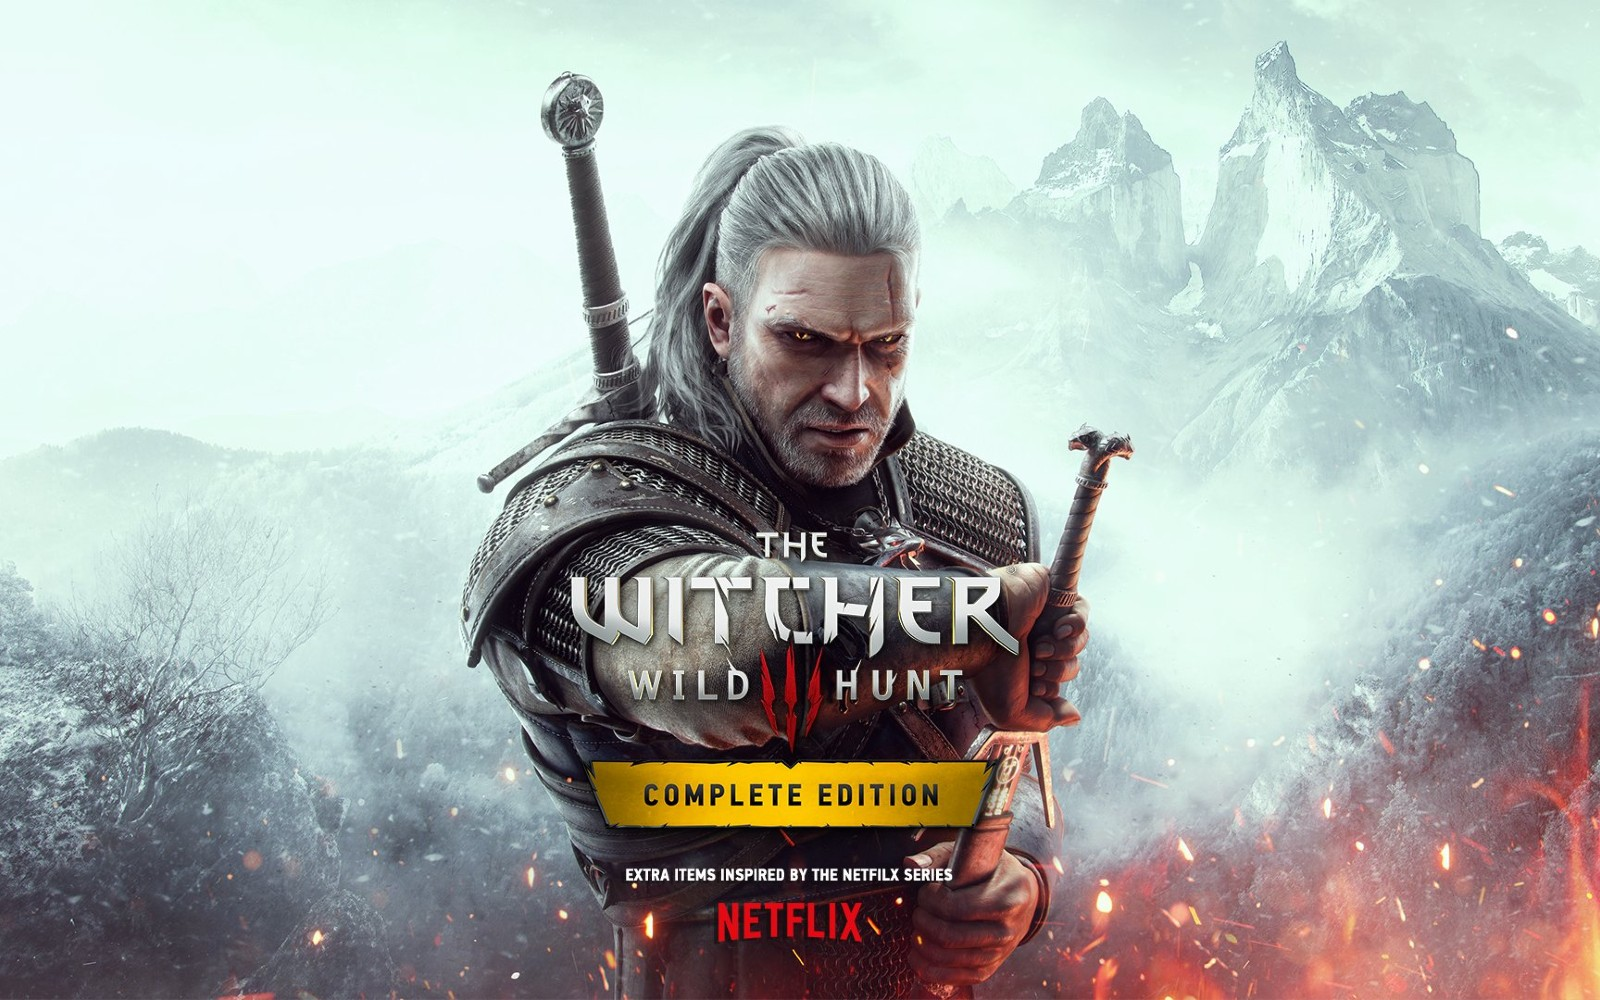 The Witcher 3: Wild Hunt gets a free DLC inspired by the Netflix series -  Fuentitech